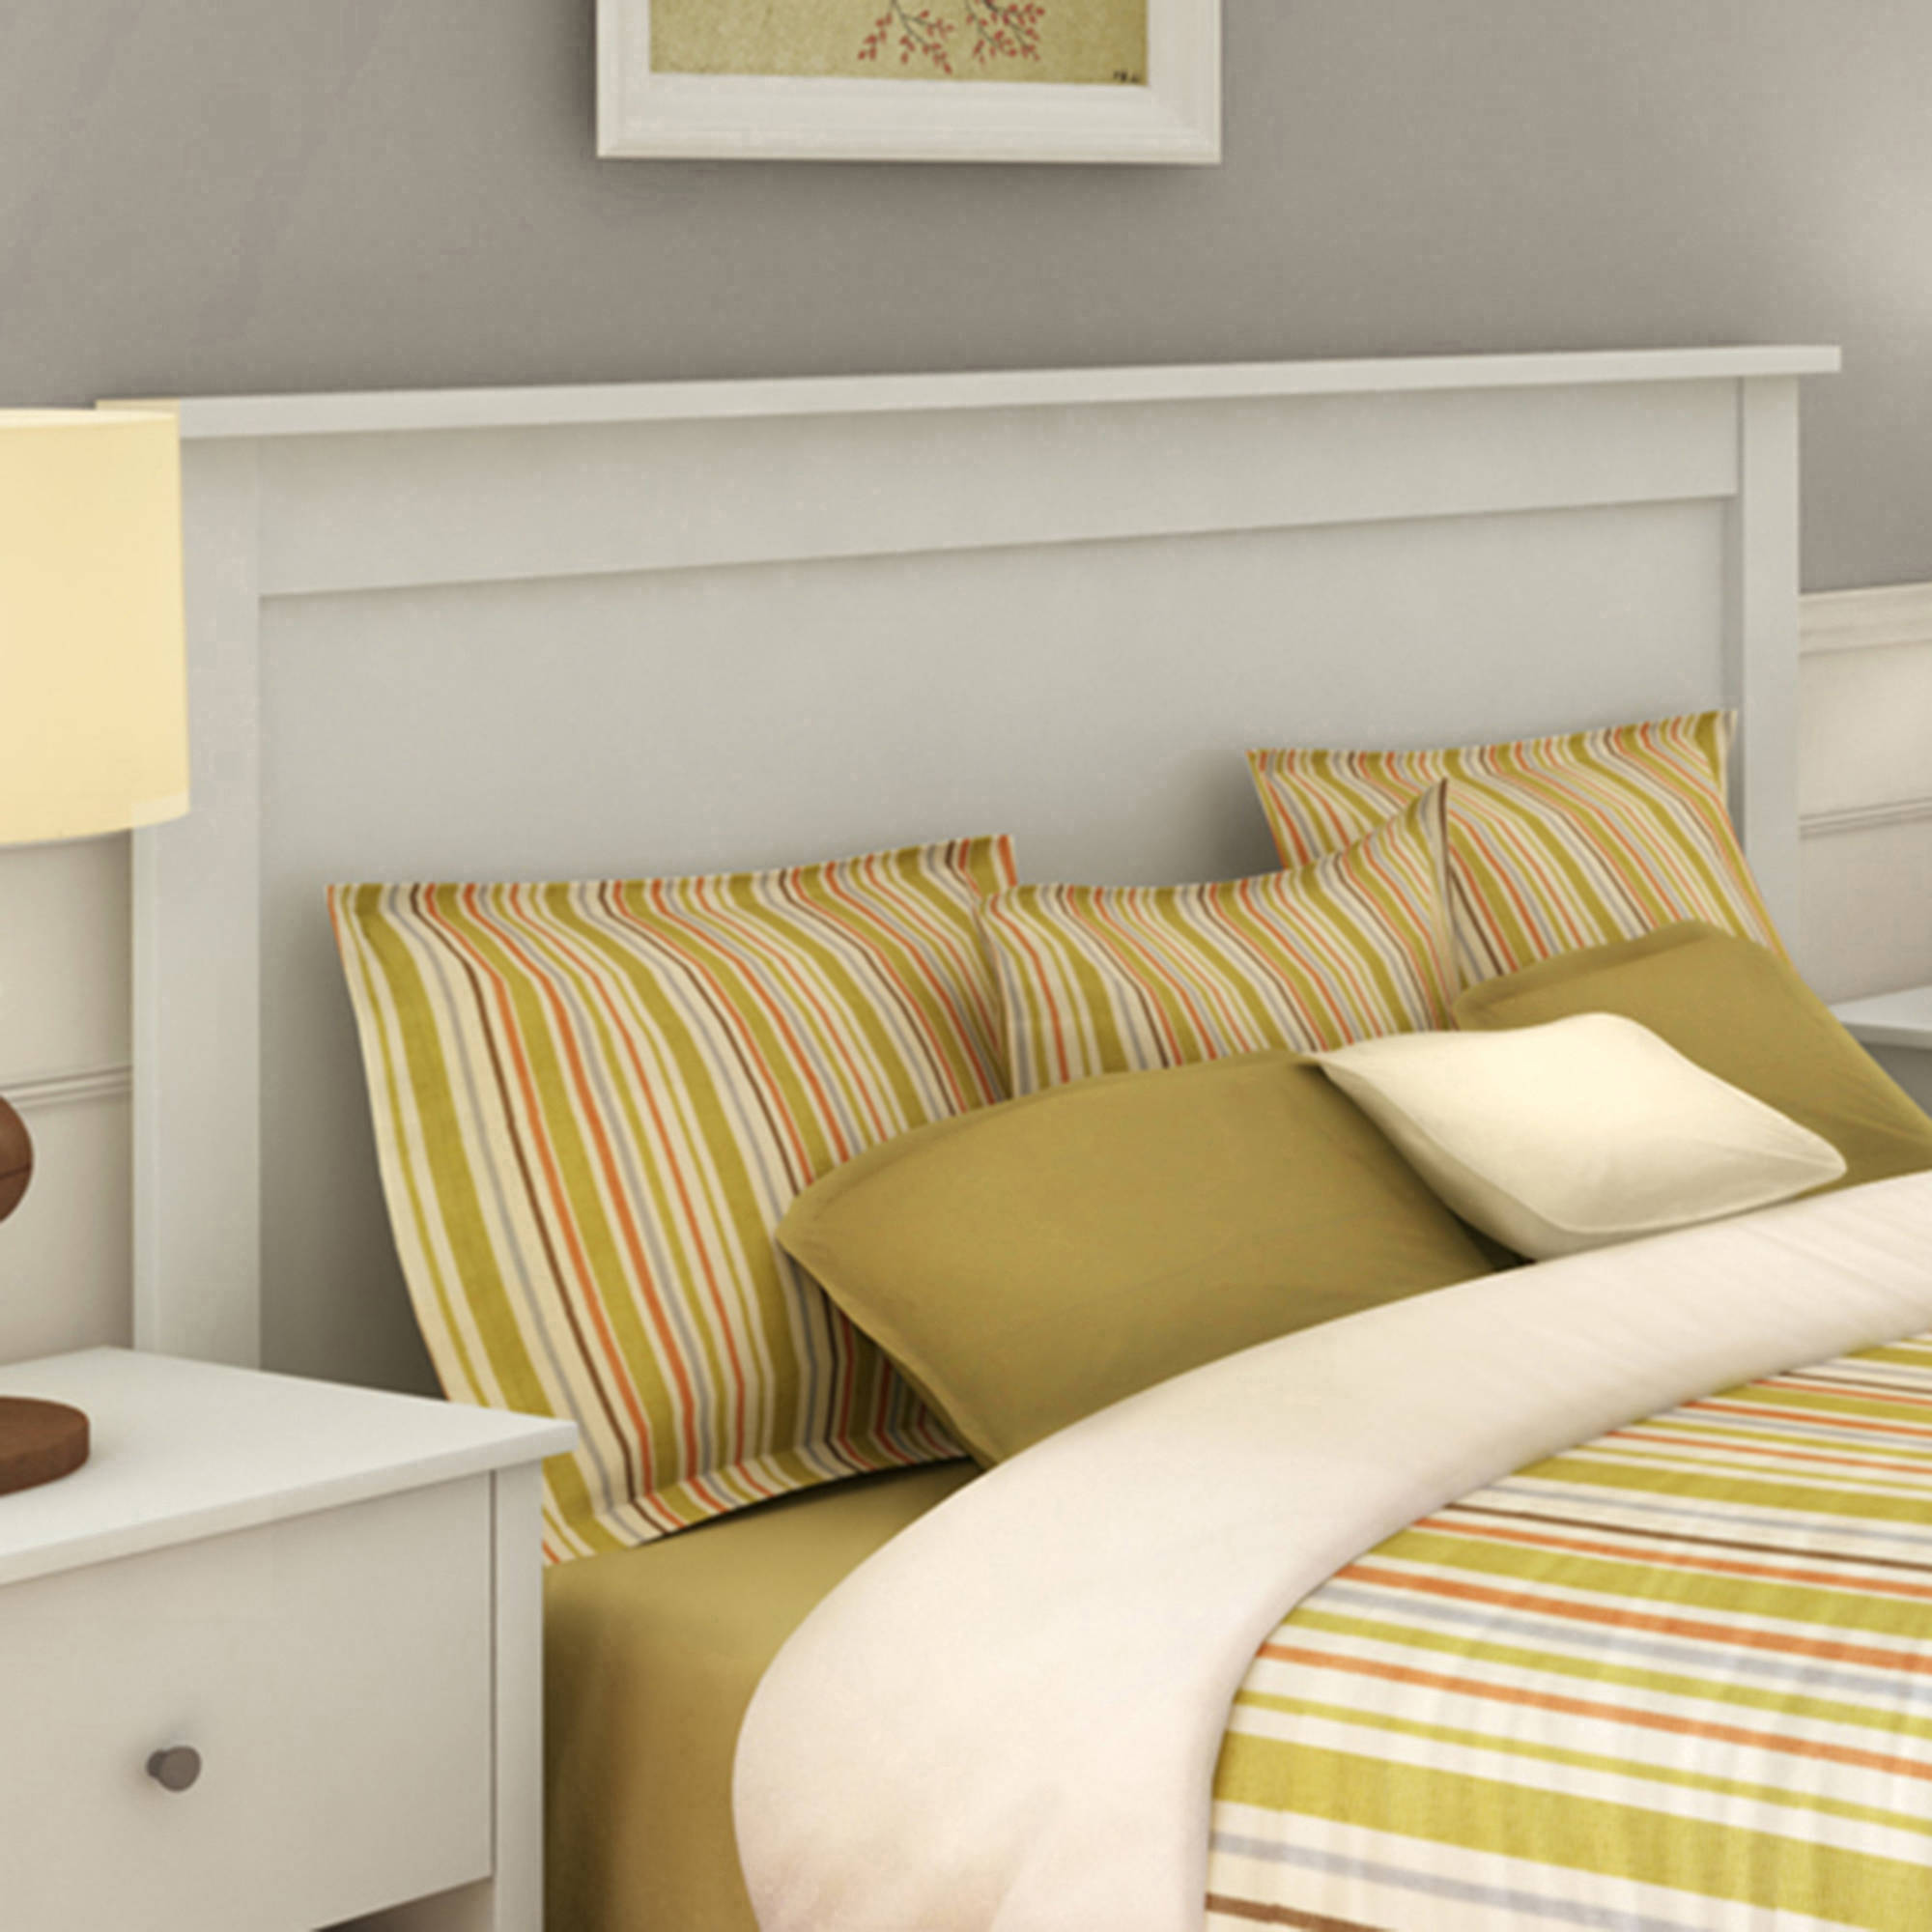 South Shore Vito Full/Queen Headboard, 54/60'', Multiple Finishes